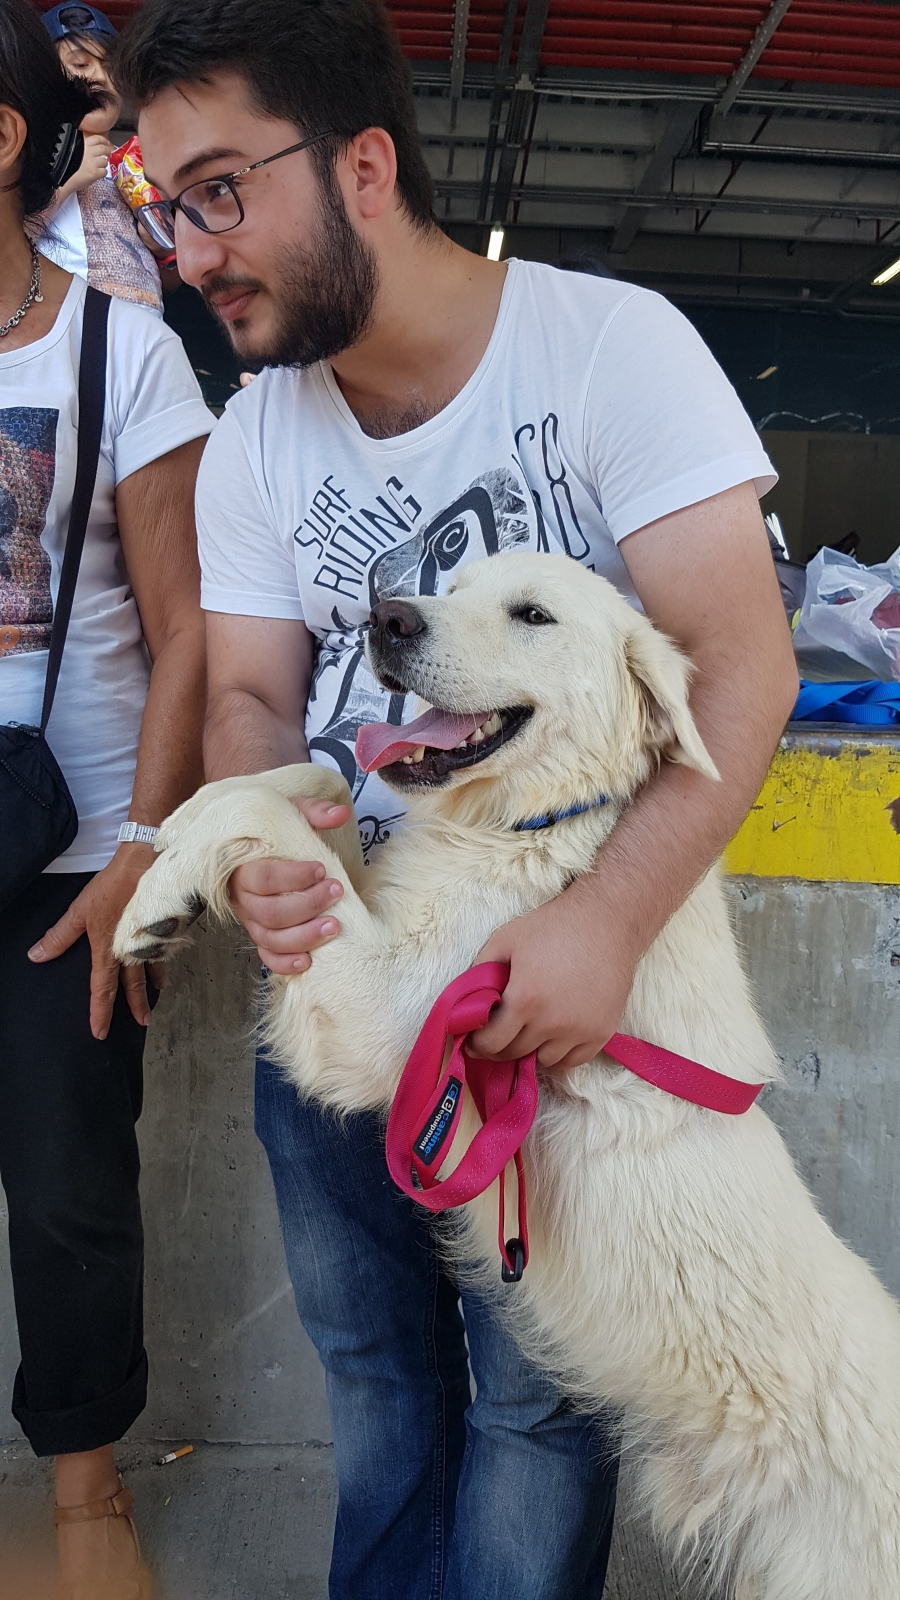 Volunteers play with the dogs outside the airport in Istanbul.